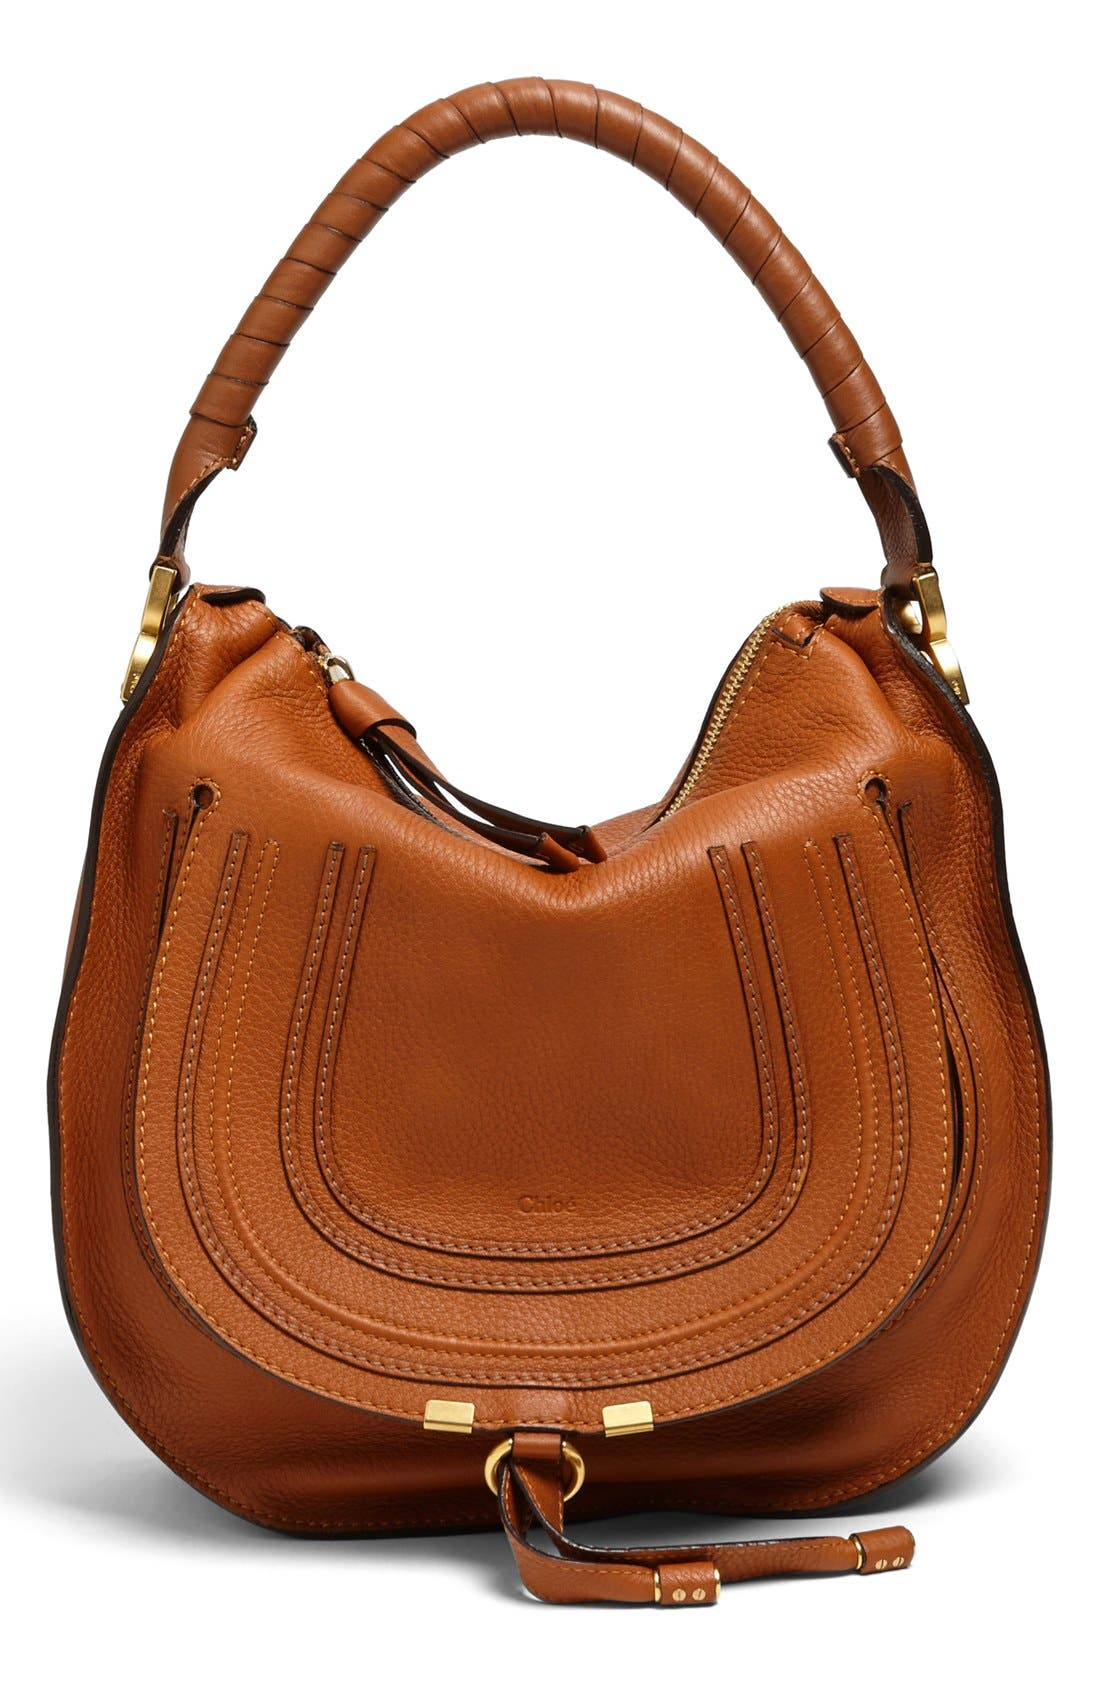 Main Image - Chloé 'Marcie - Medium' Leather Hobo